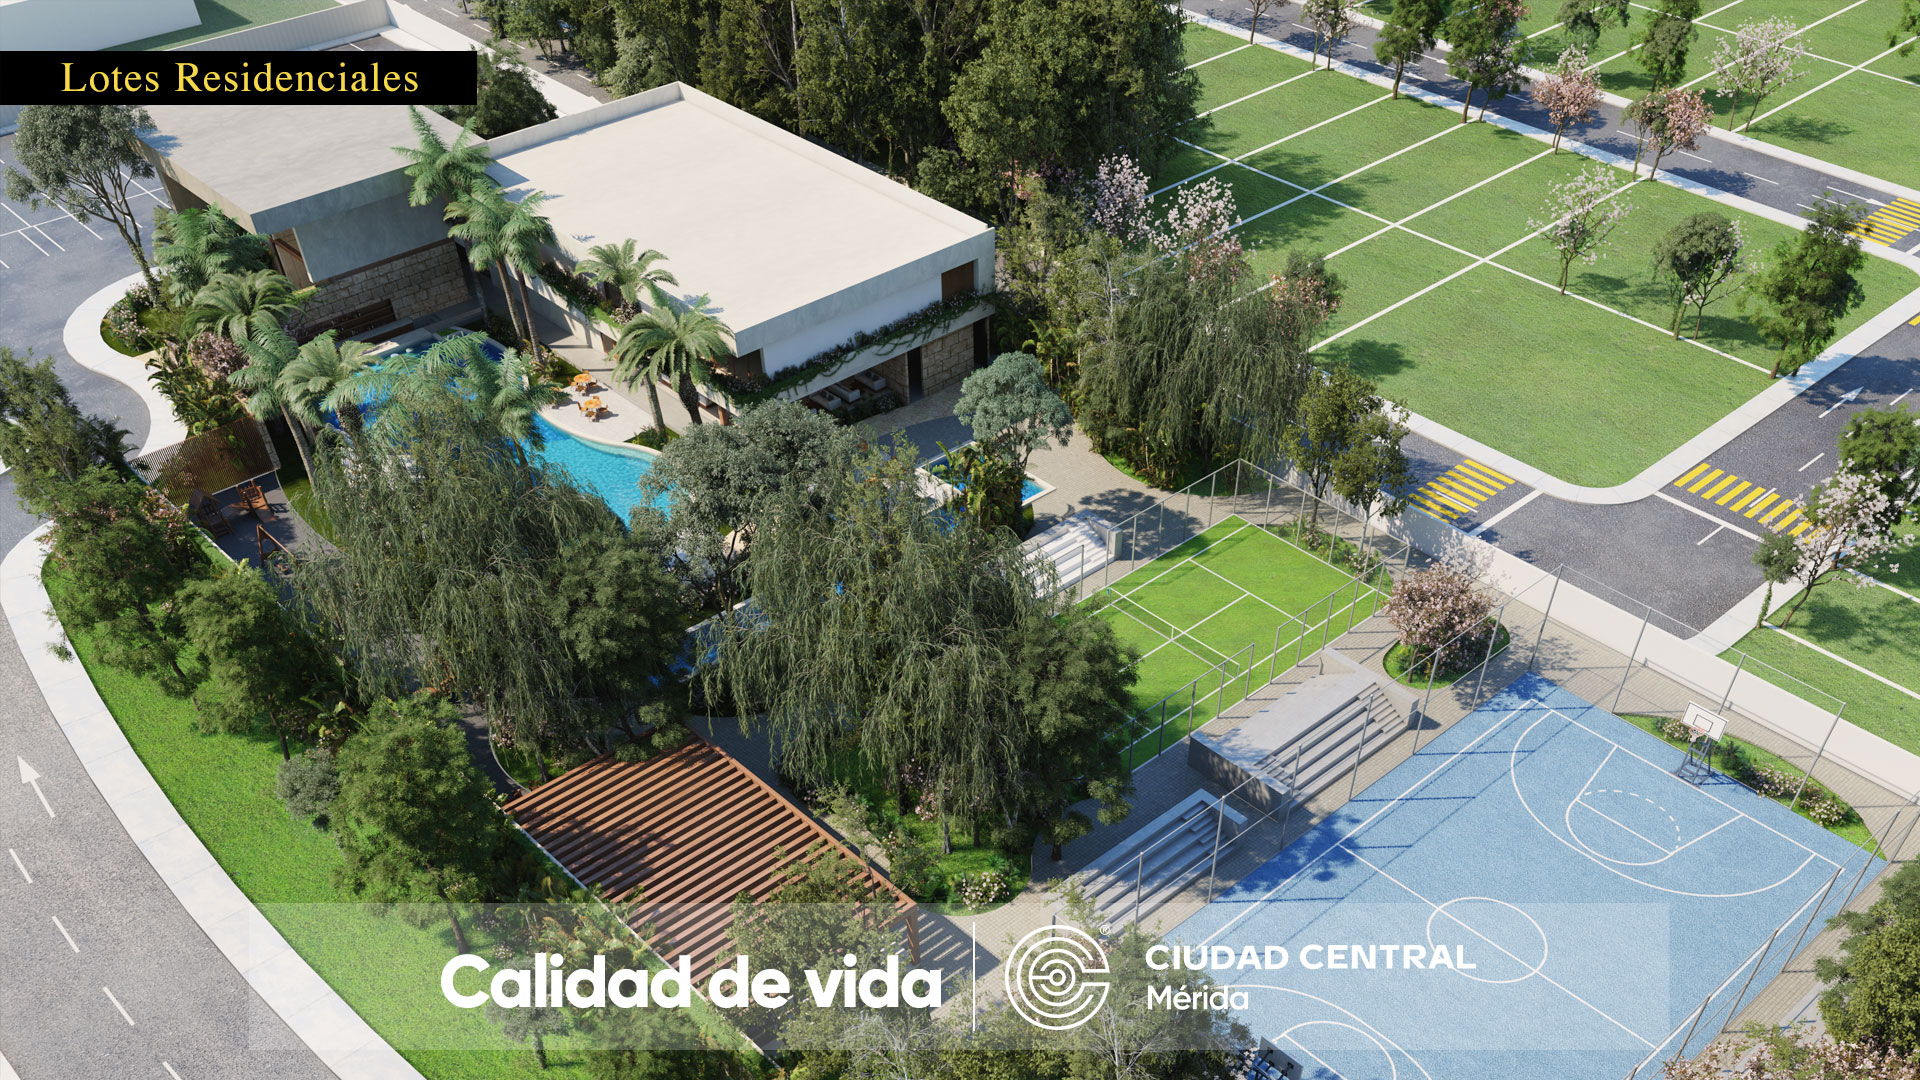 Ciudad Central Casa Club Render